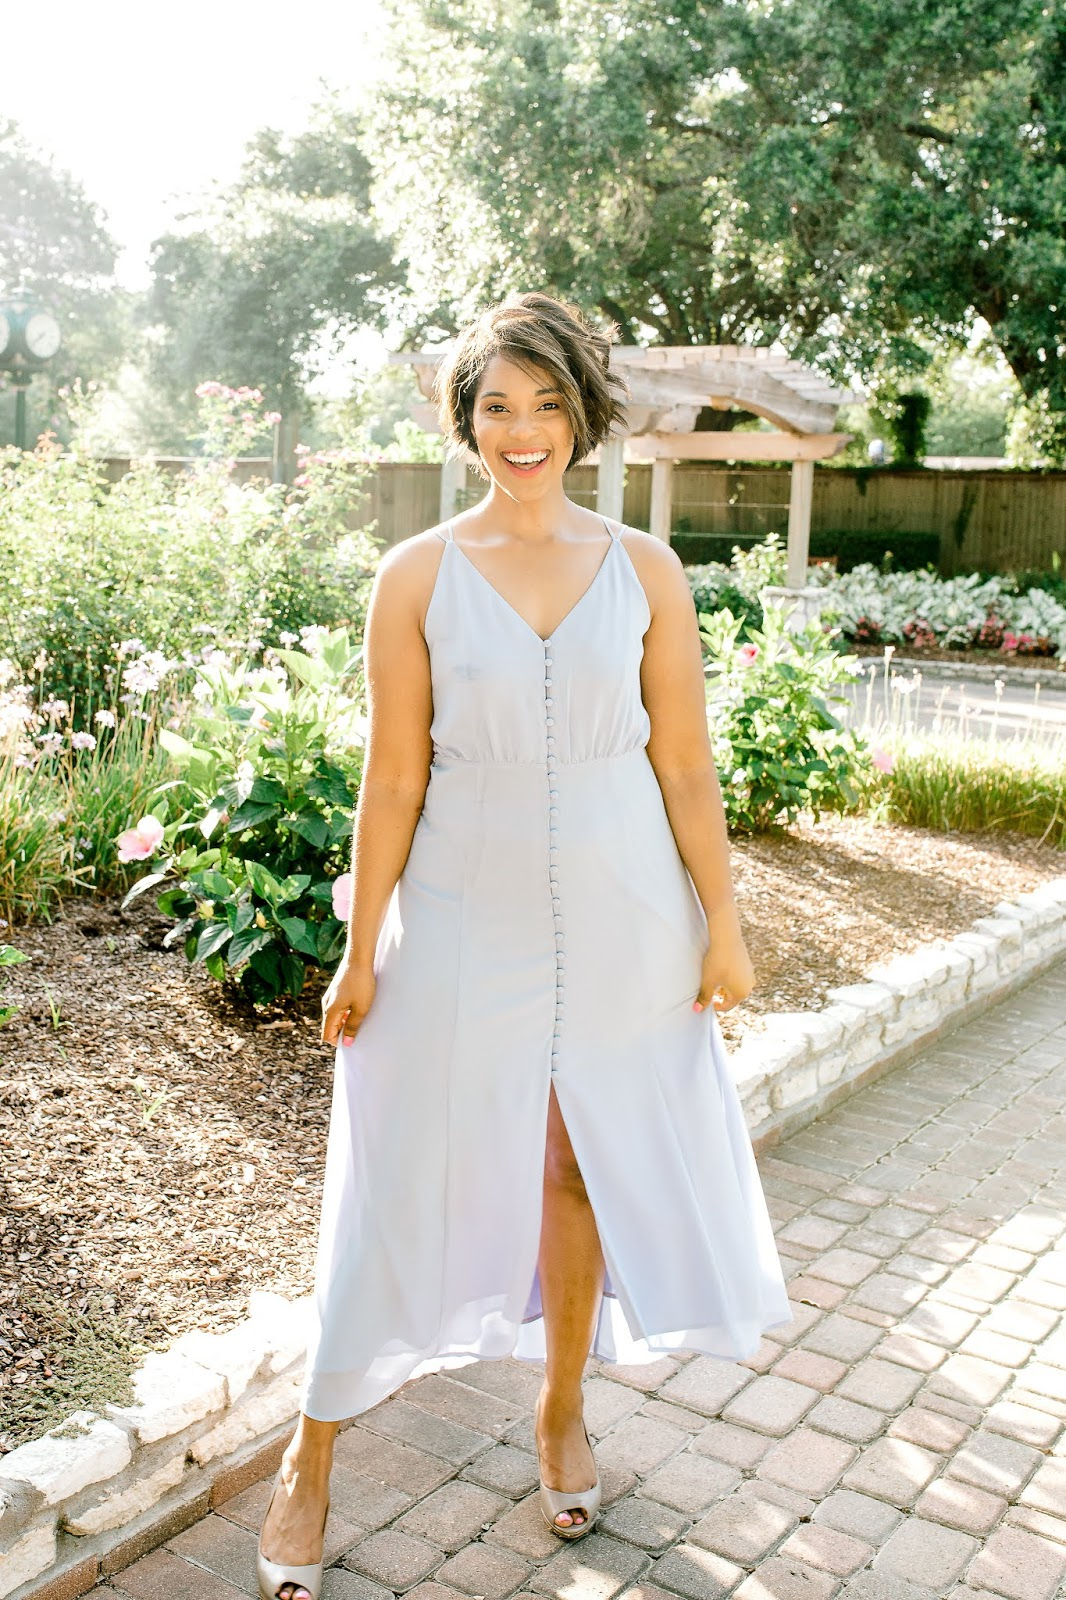 Summer Wedding Dress Style with Nordstrom Rack